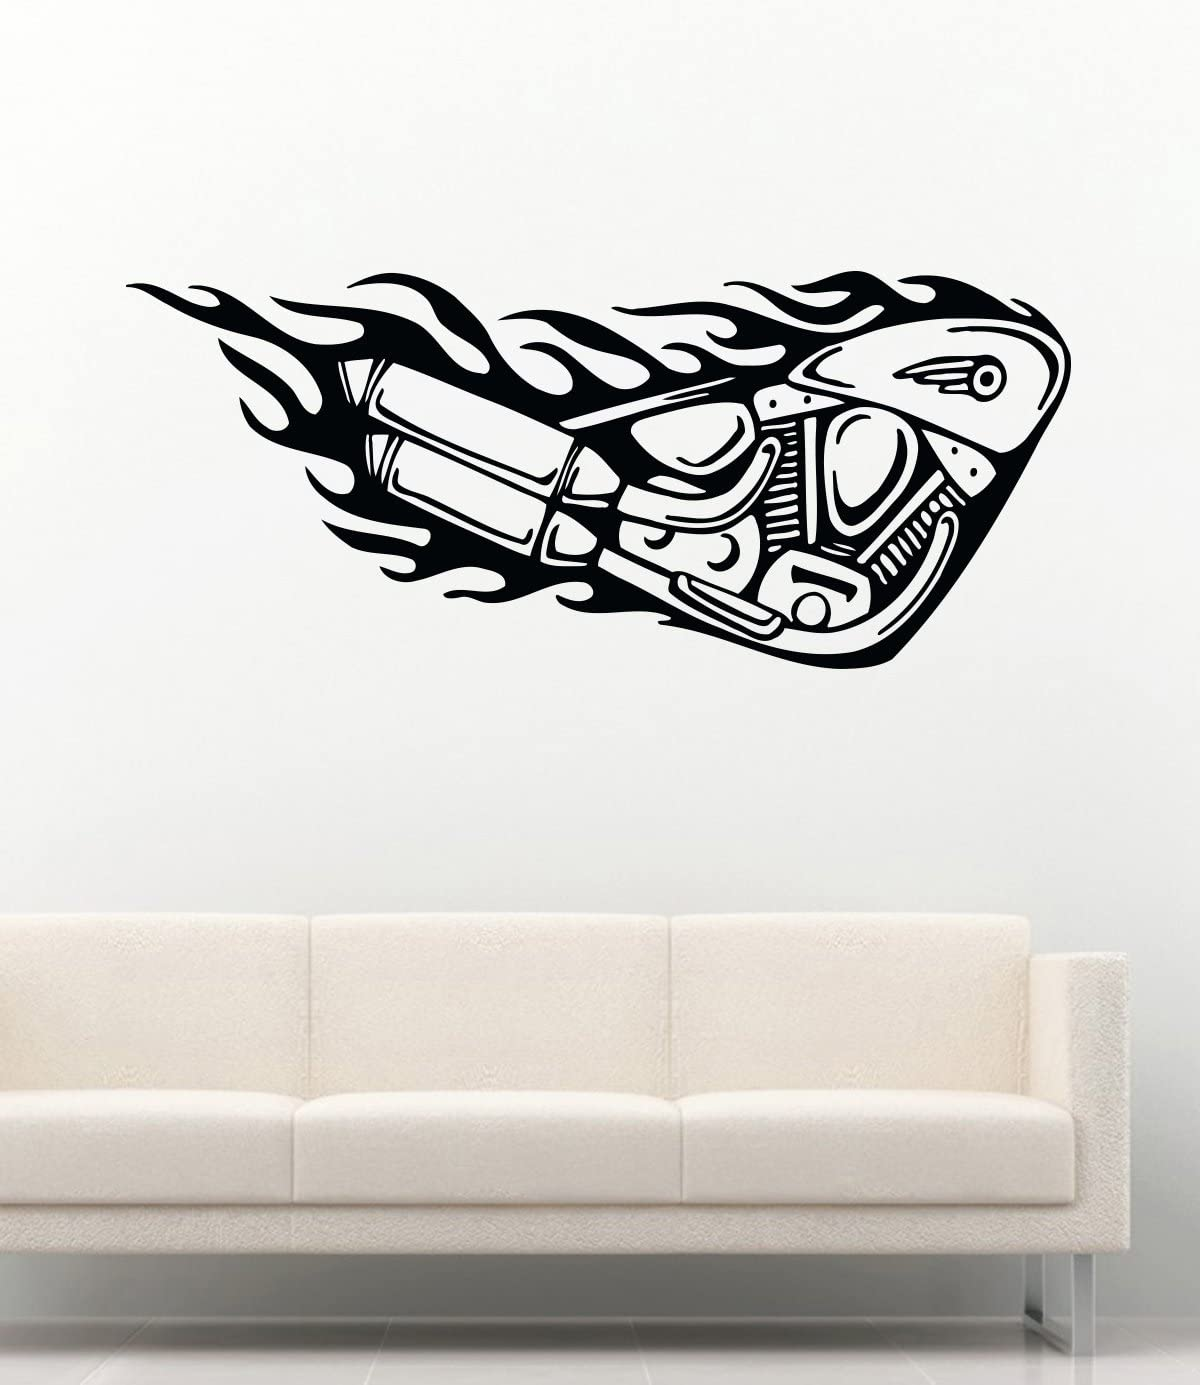 Classic Easy Rider Style Motorcycle Low Rider Chopper Window Wall Decal Sticker